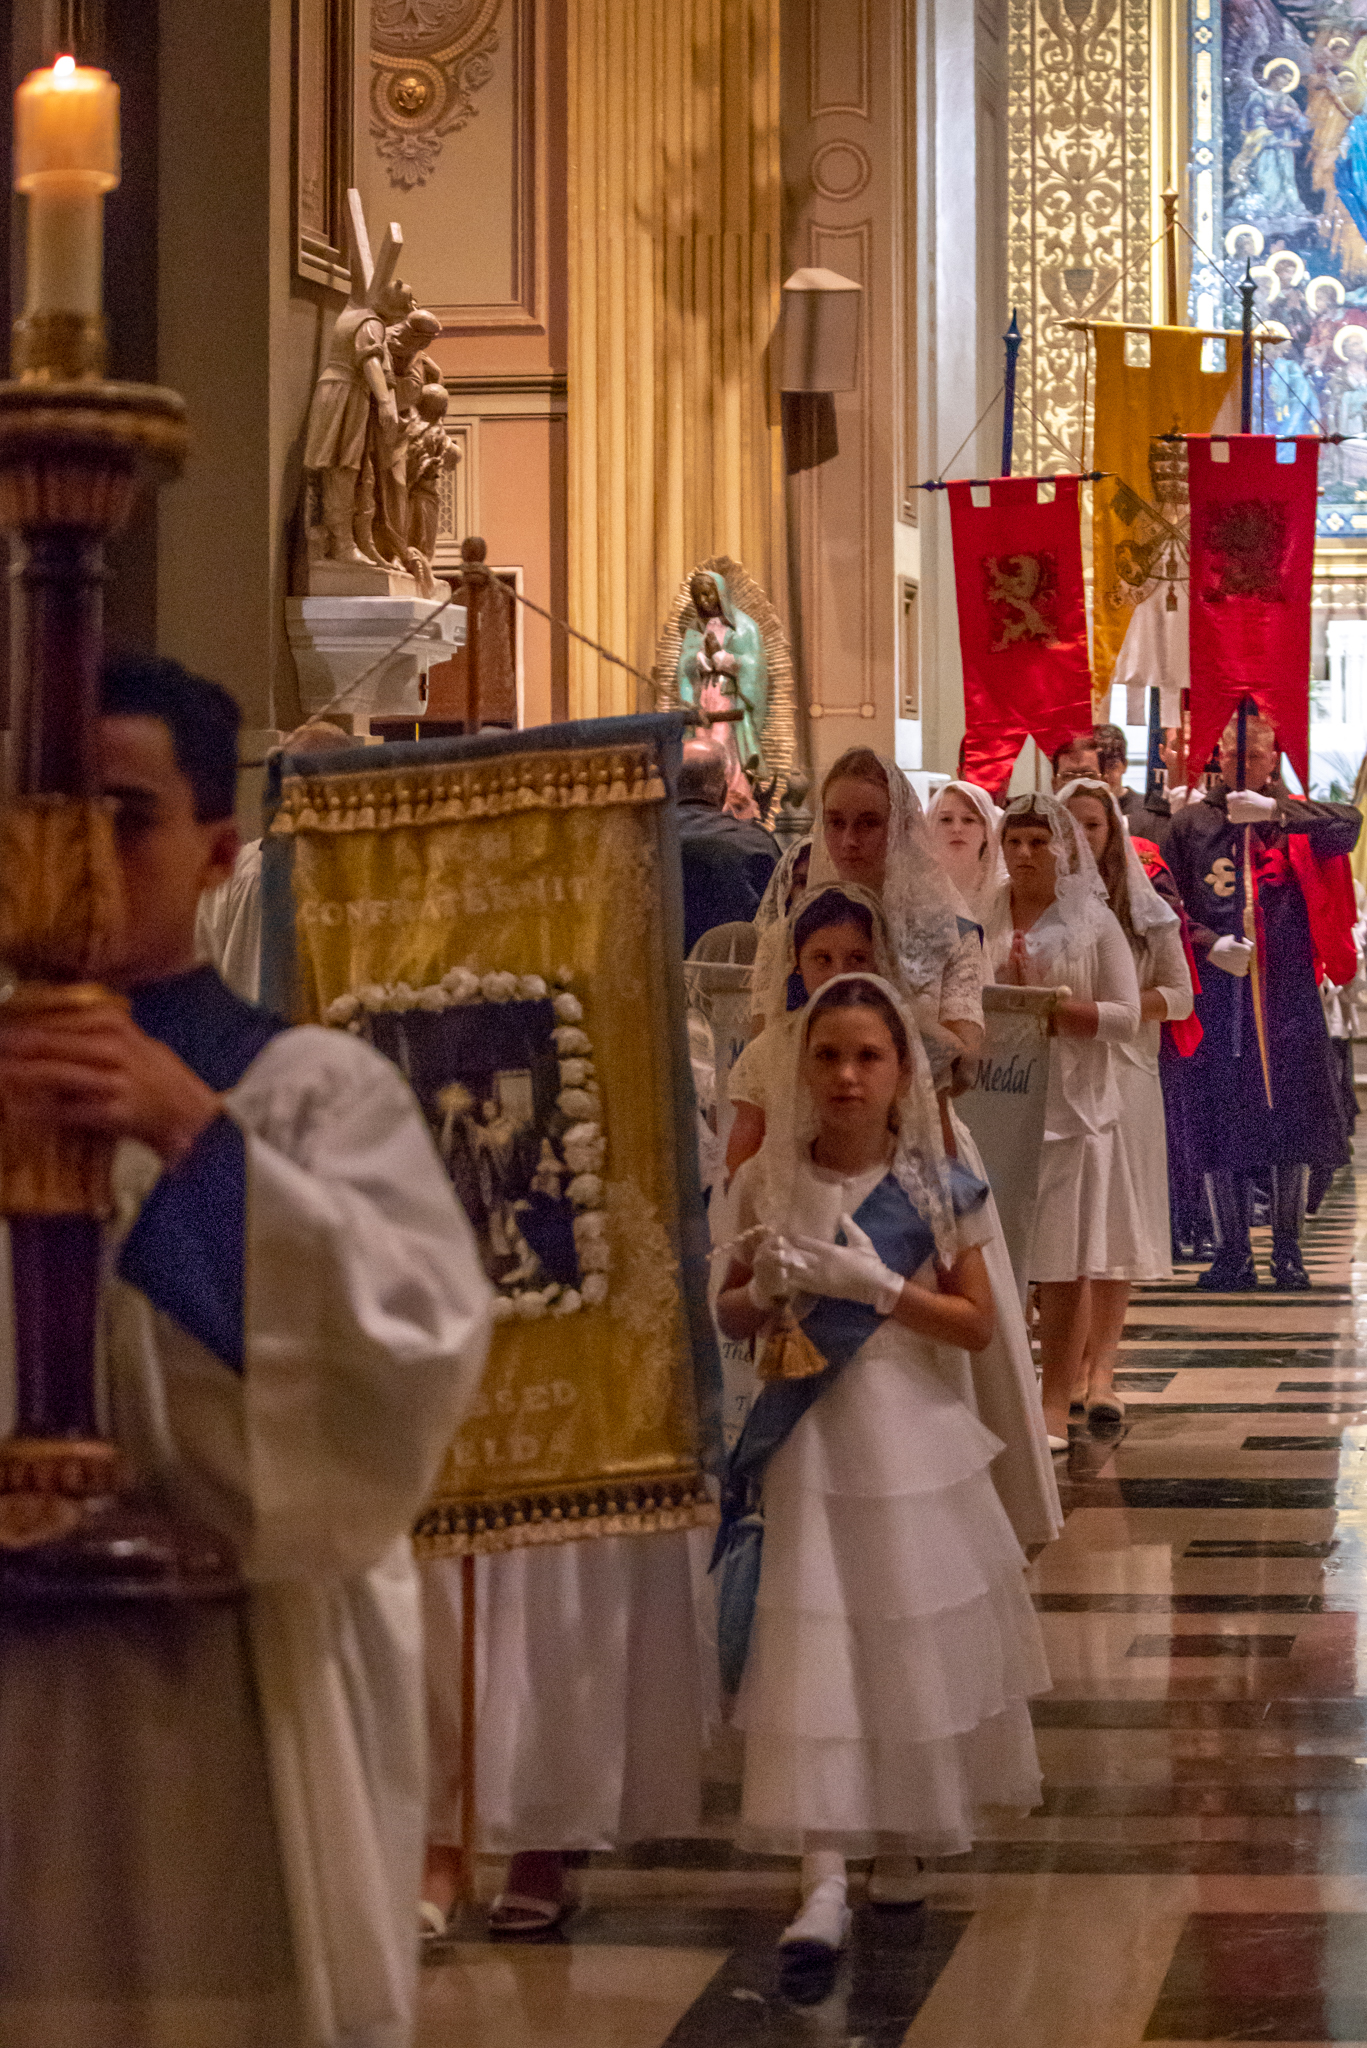 What church feast is celebrated on August 18 by Christians